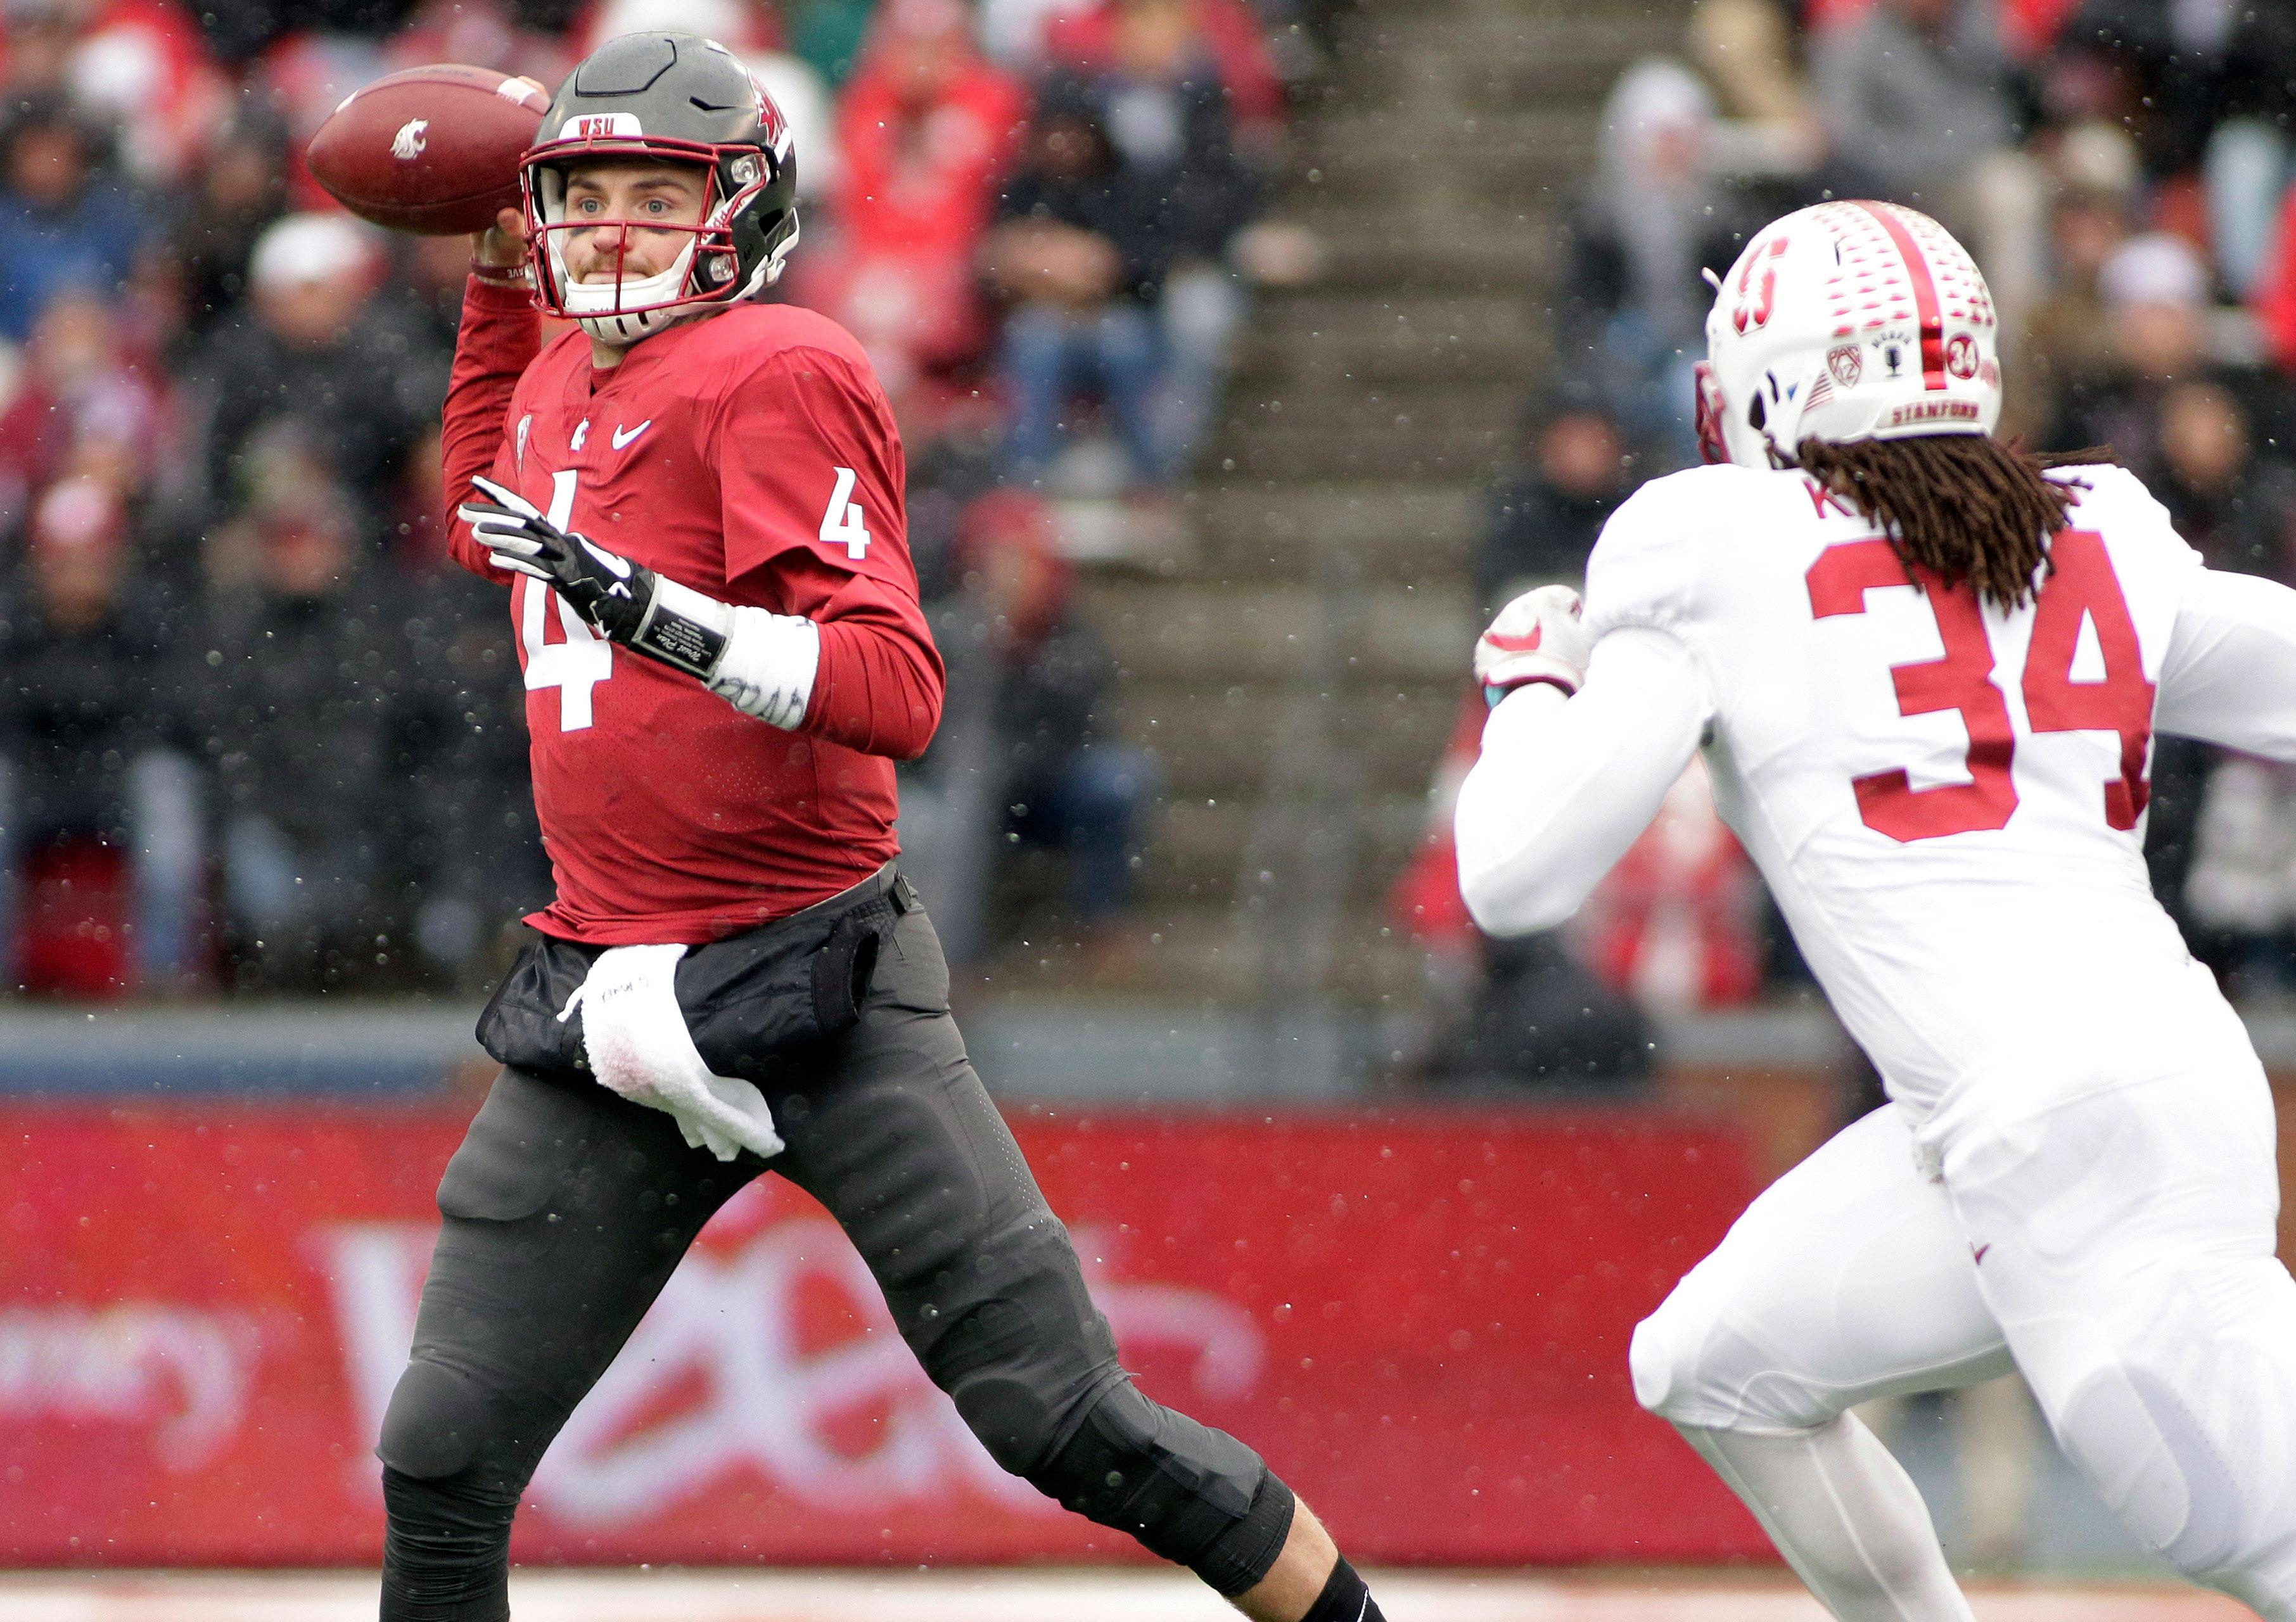 Washington State quarterback Luke Falk (4) throws a pass as he is chased by Stanford linebacker Peter Kalambayi (34) during the first half of an NCAA college football game in Pullman, Wash., Saturday, Nov. 4, 2017. (AP Photo/Young Kwak)